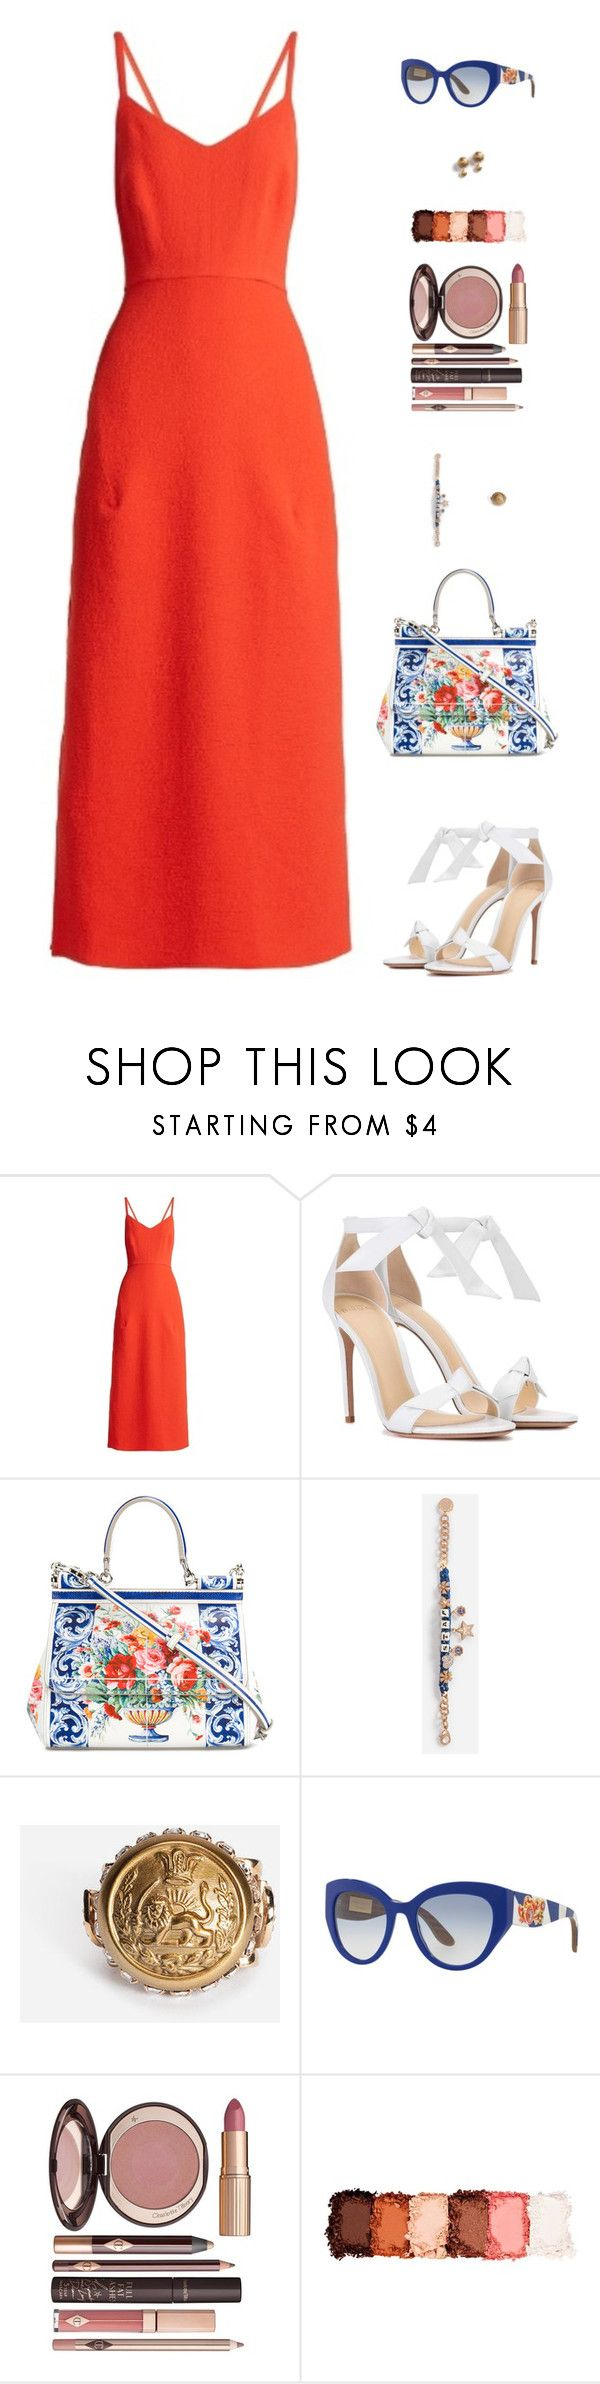 """""""Untitled #5039"""" by mdmsb on Polyvore featuring Rachel Comey, Alexandre Birman, Dolce&Gabbana, Charlotte Tilbury and NYX"""